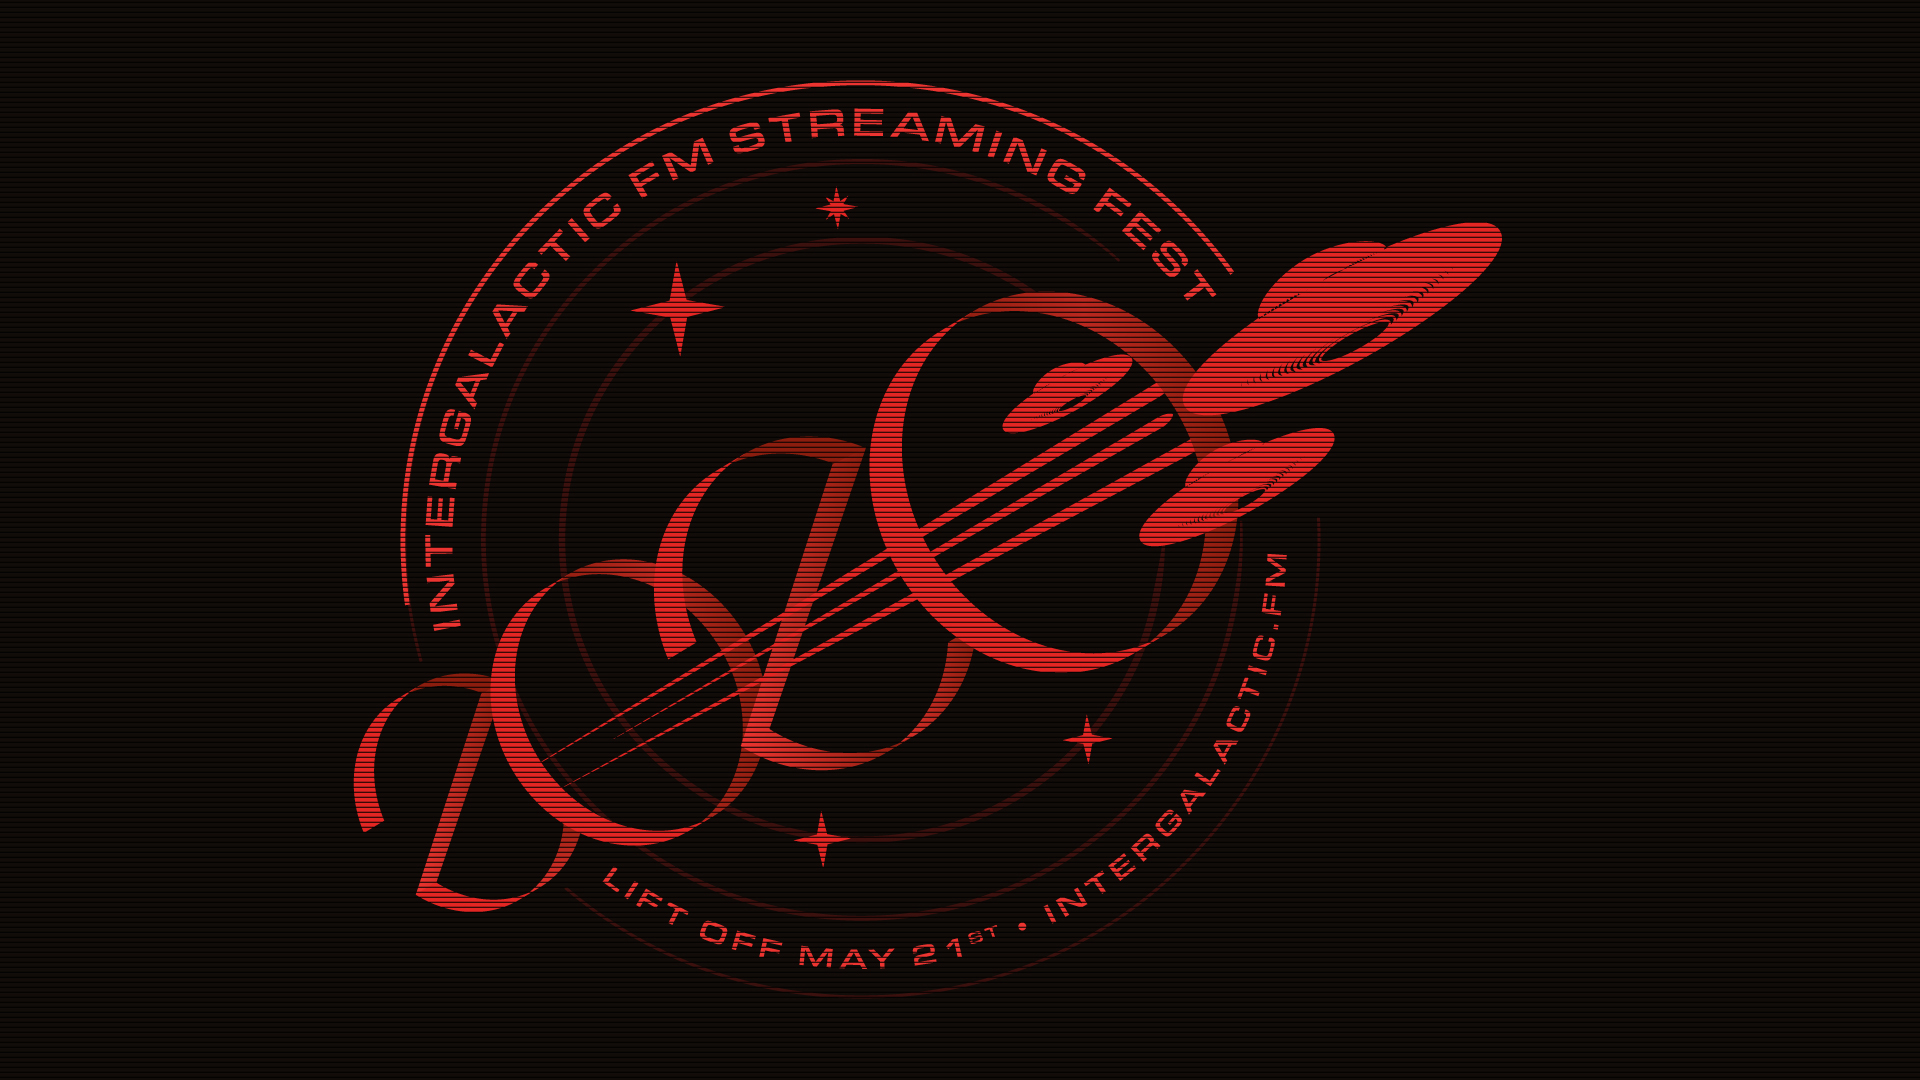 The Intergalactic FM Streaming Festival of 2020 (May 21st)